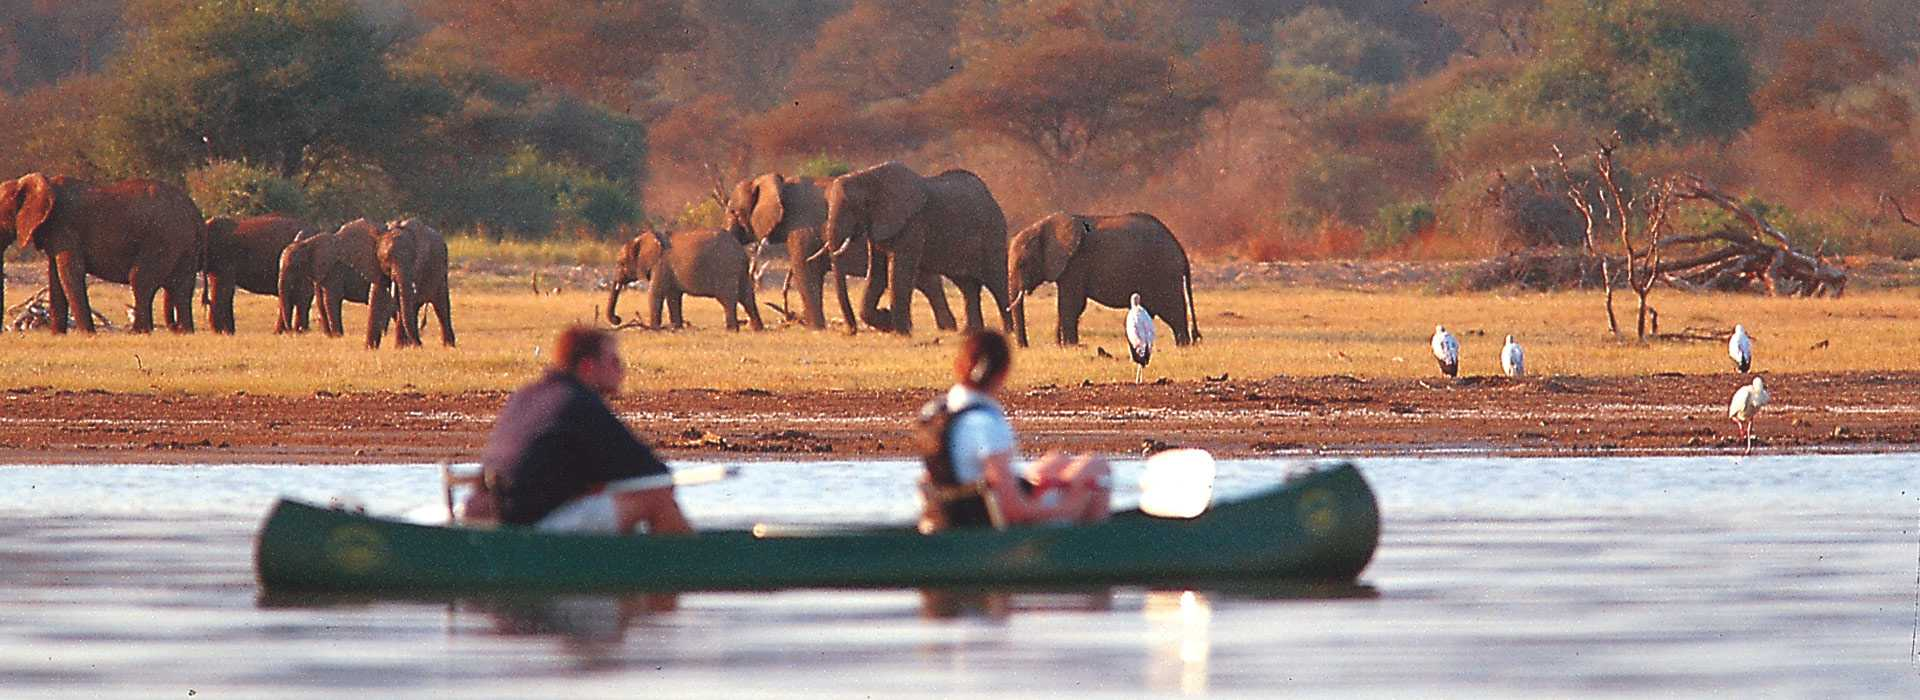 visiting lake manyara tanzania history and wildlife The staggering topography and incredible wildlife make tanzania a truly magnificent country to visit in the arusha region of tanzania is lake manyara national park which features breathtaking landscapes of forest, arid land and laka manyara.